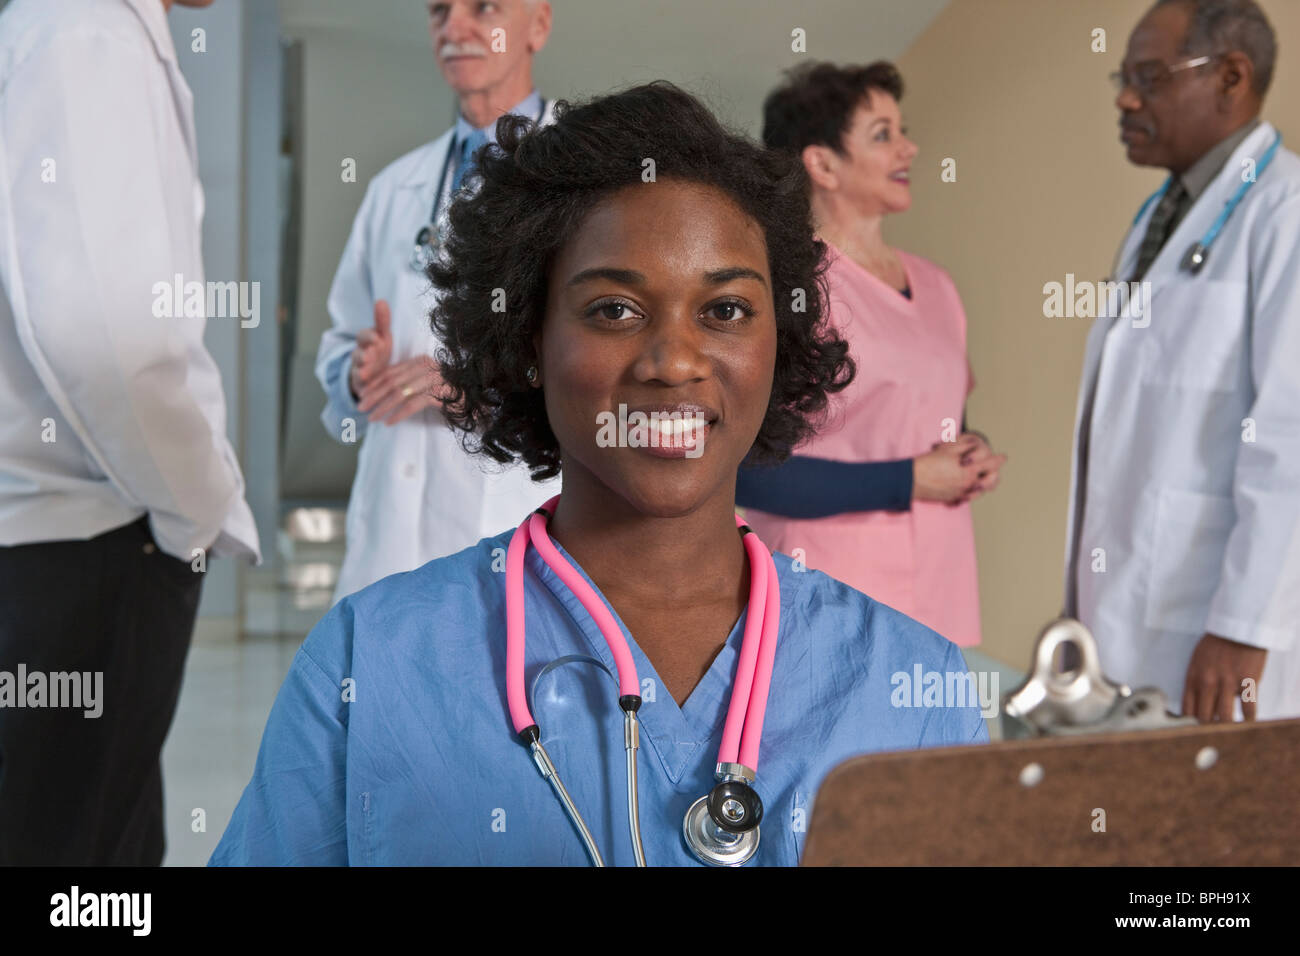 Jamaican female nurse smiling with her colleagues in the background - Stock Image